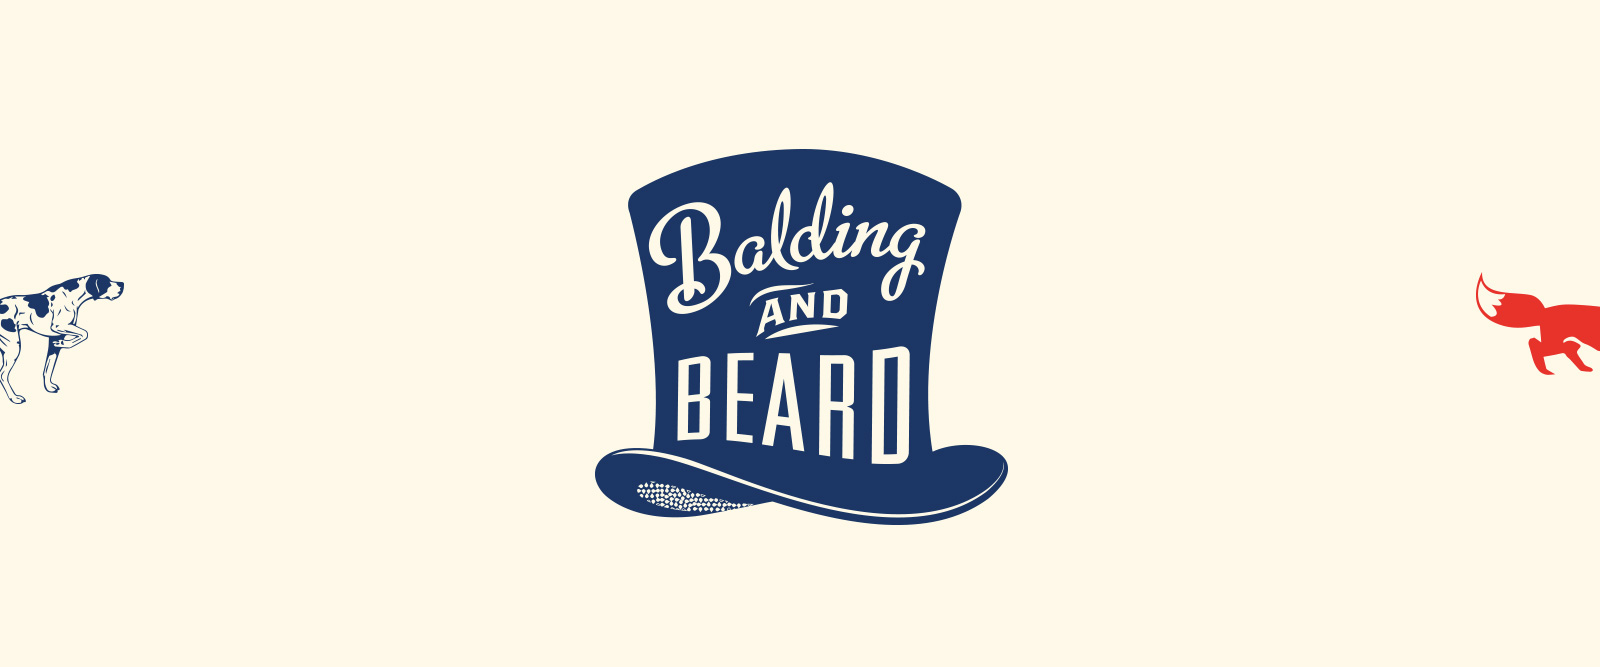 Balding and Beard branding